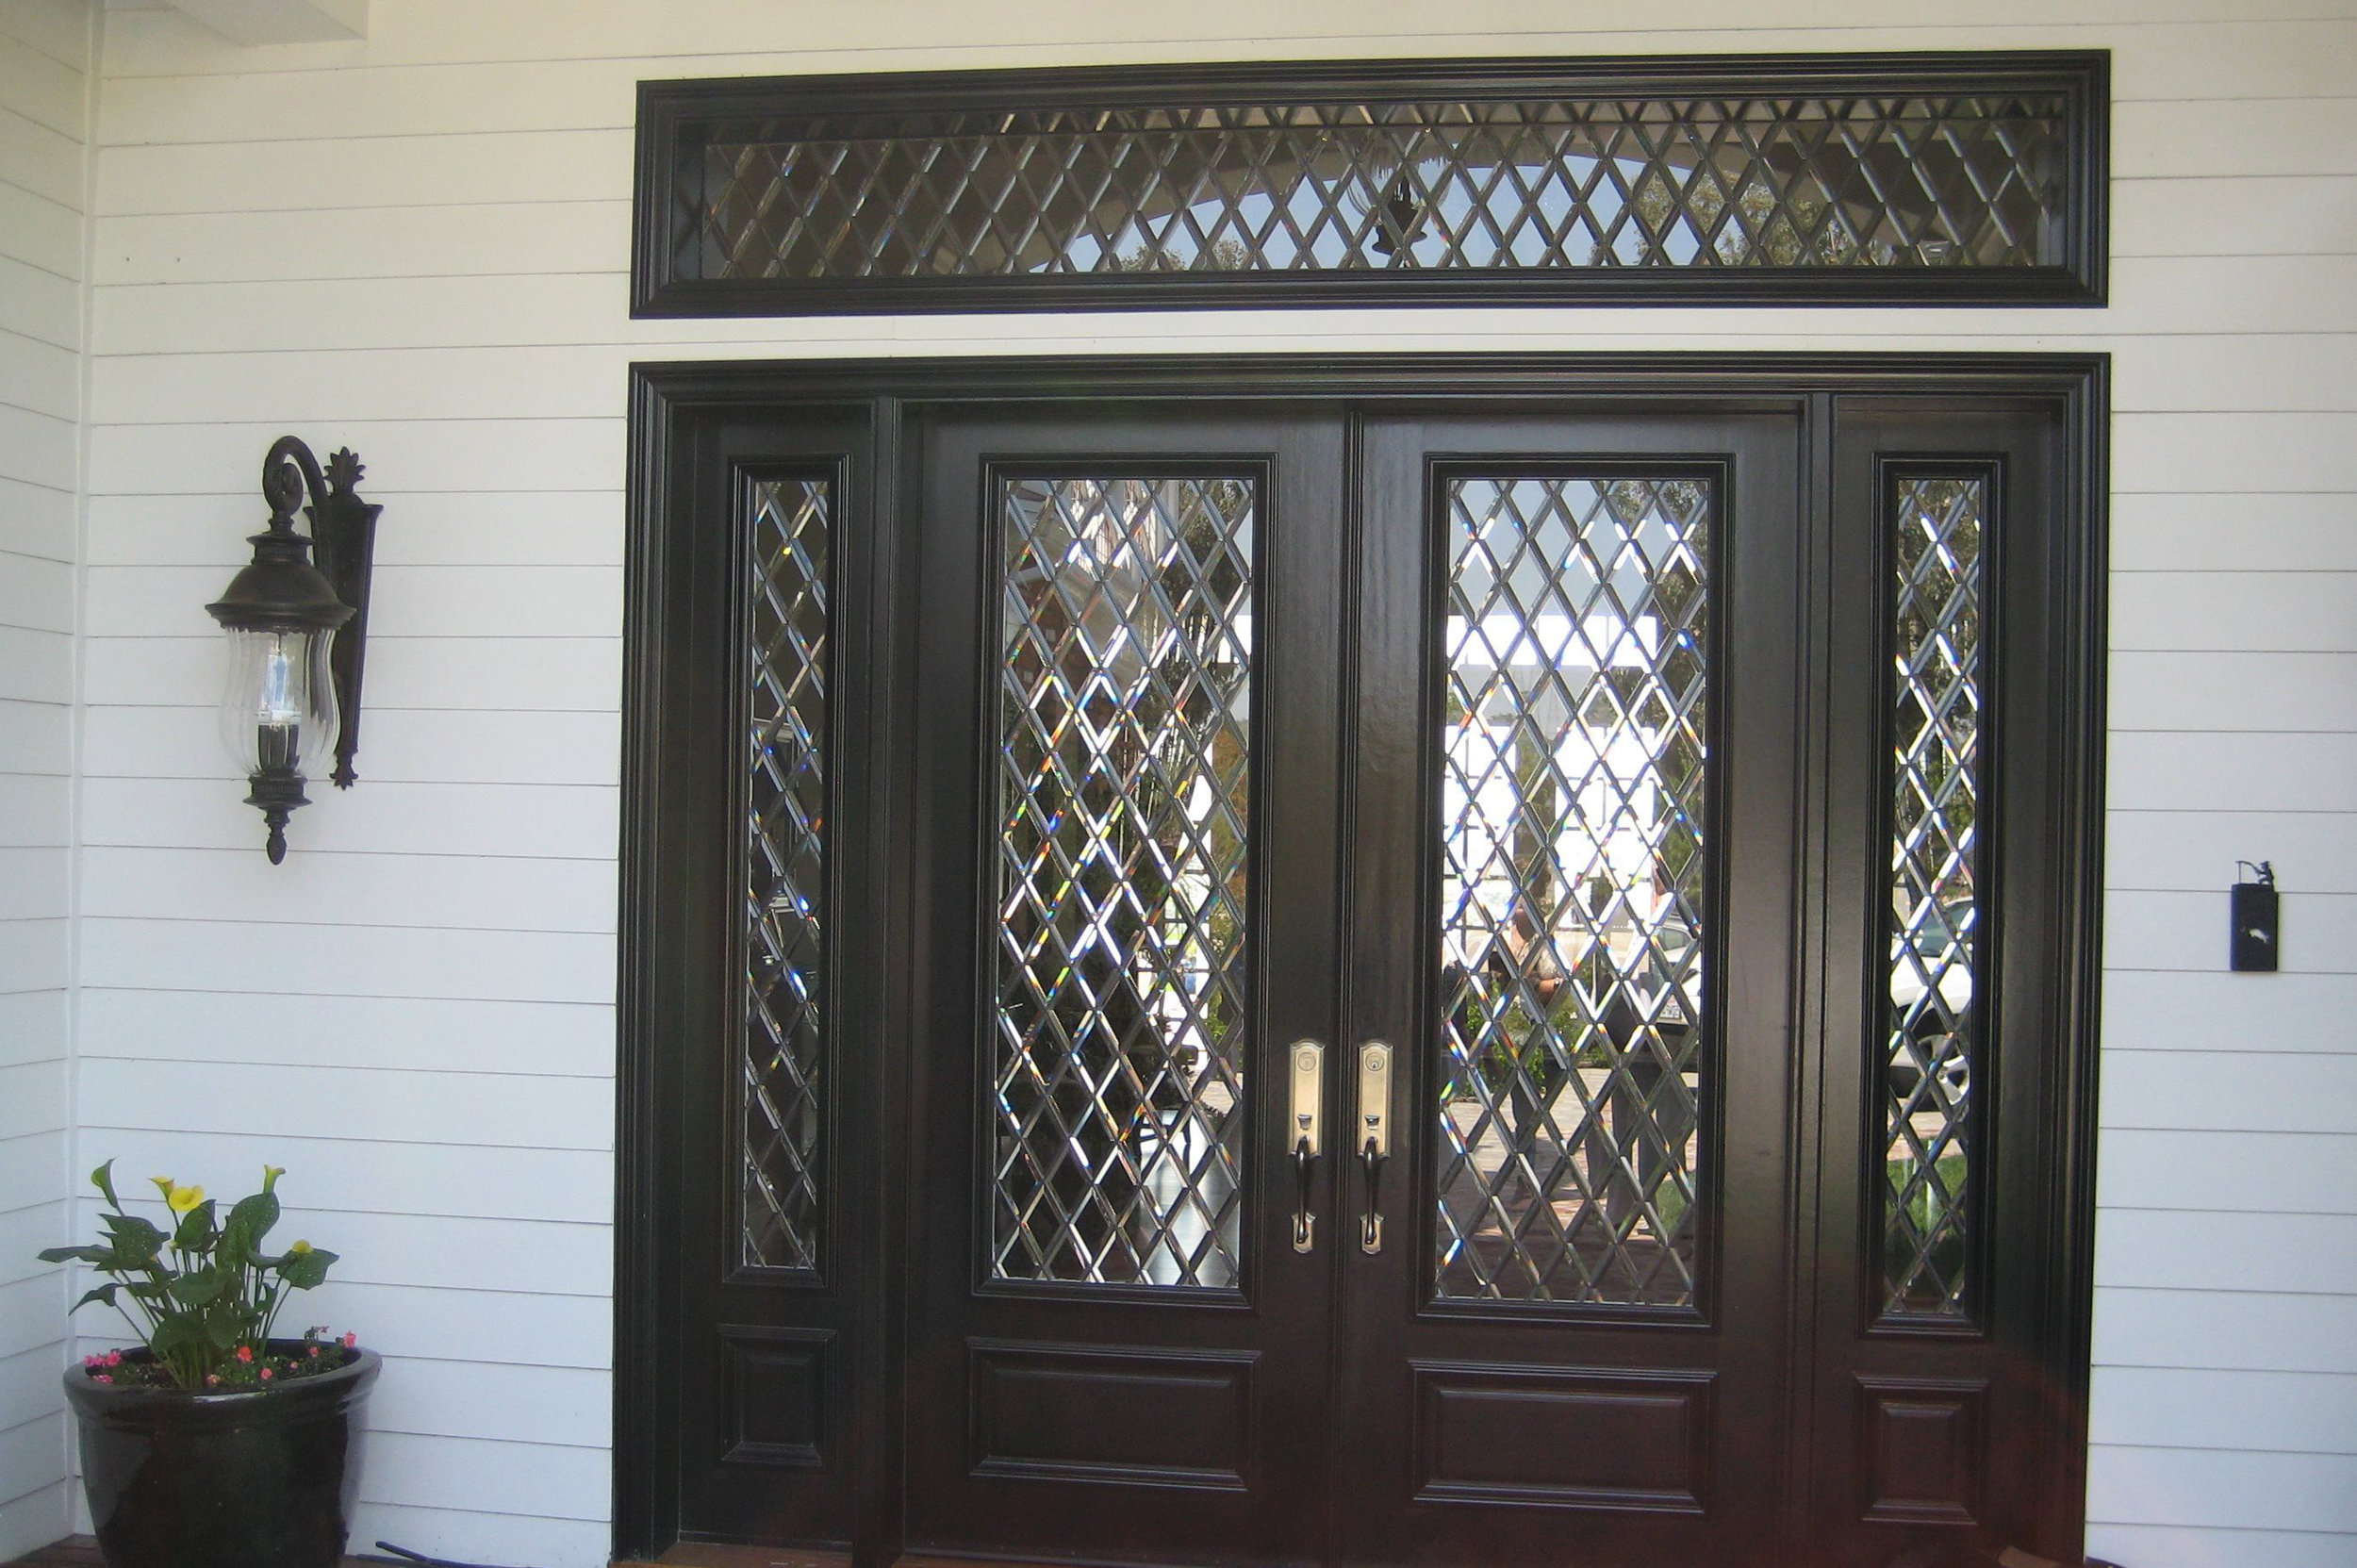 If you can imagine it, we can manufacture it! - We create extraordinary doors that are unique and available in a broad selection of designs and materials. Enjoy the process of creating the perfect entry door that welcomes and conveys warmth, while reflecting style and sophistication. Call us at 714-319-0177.